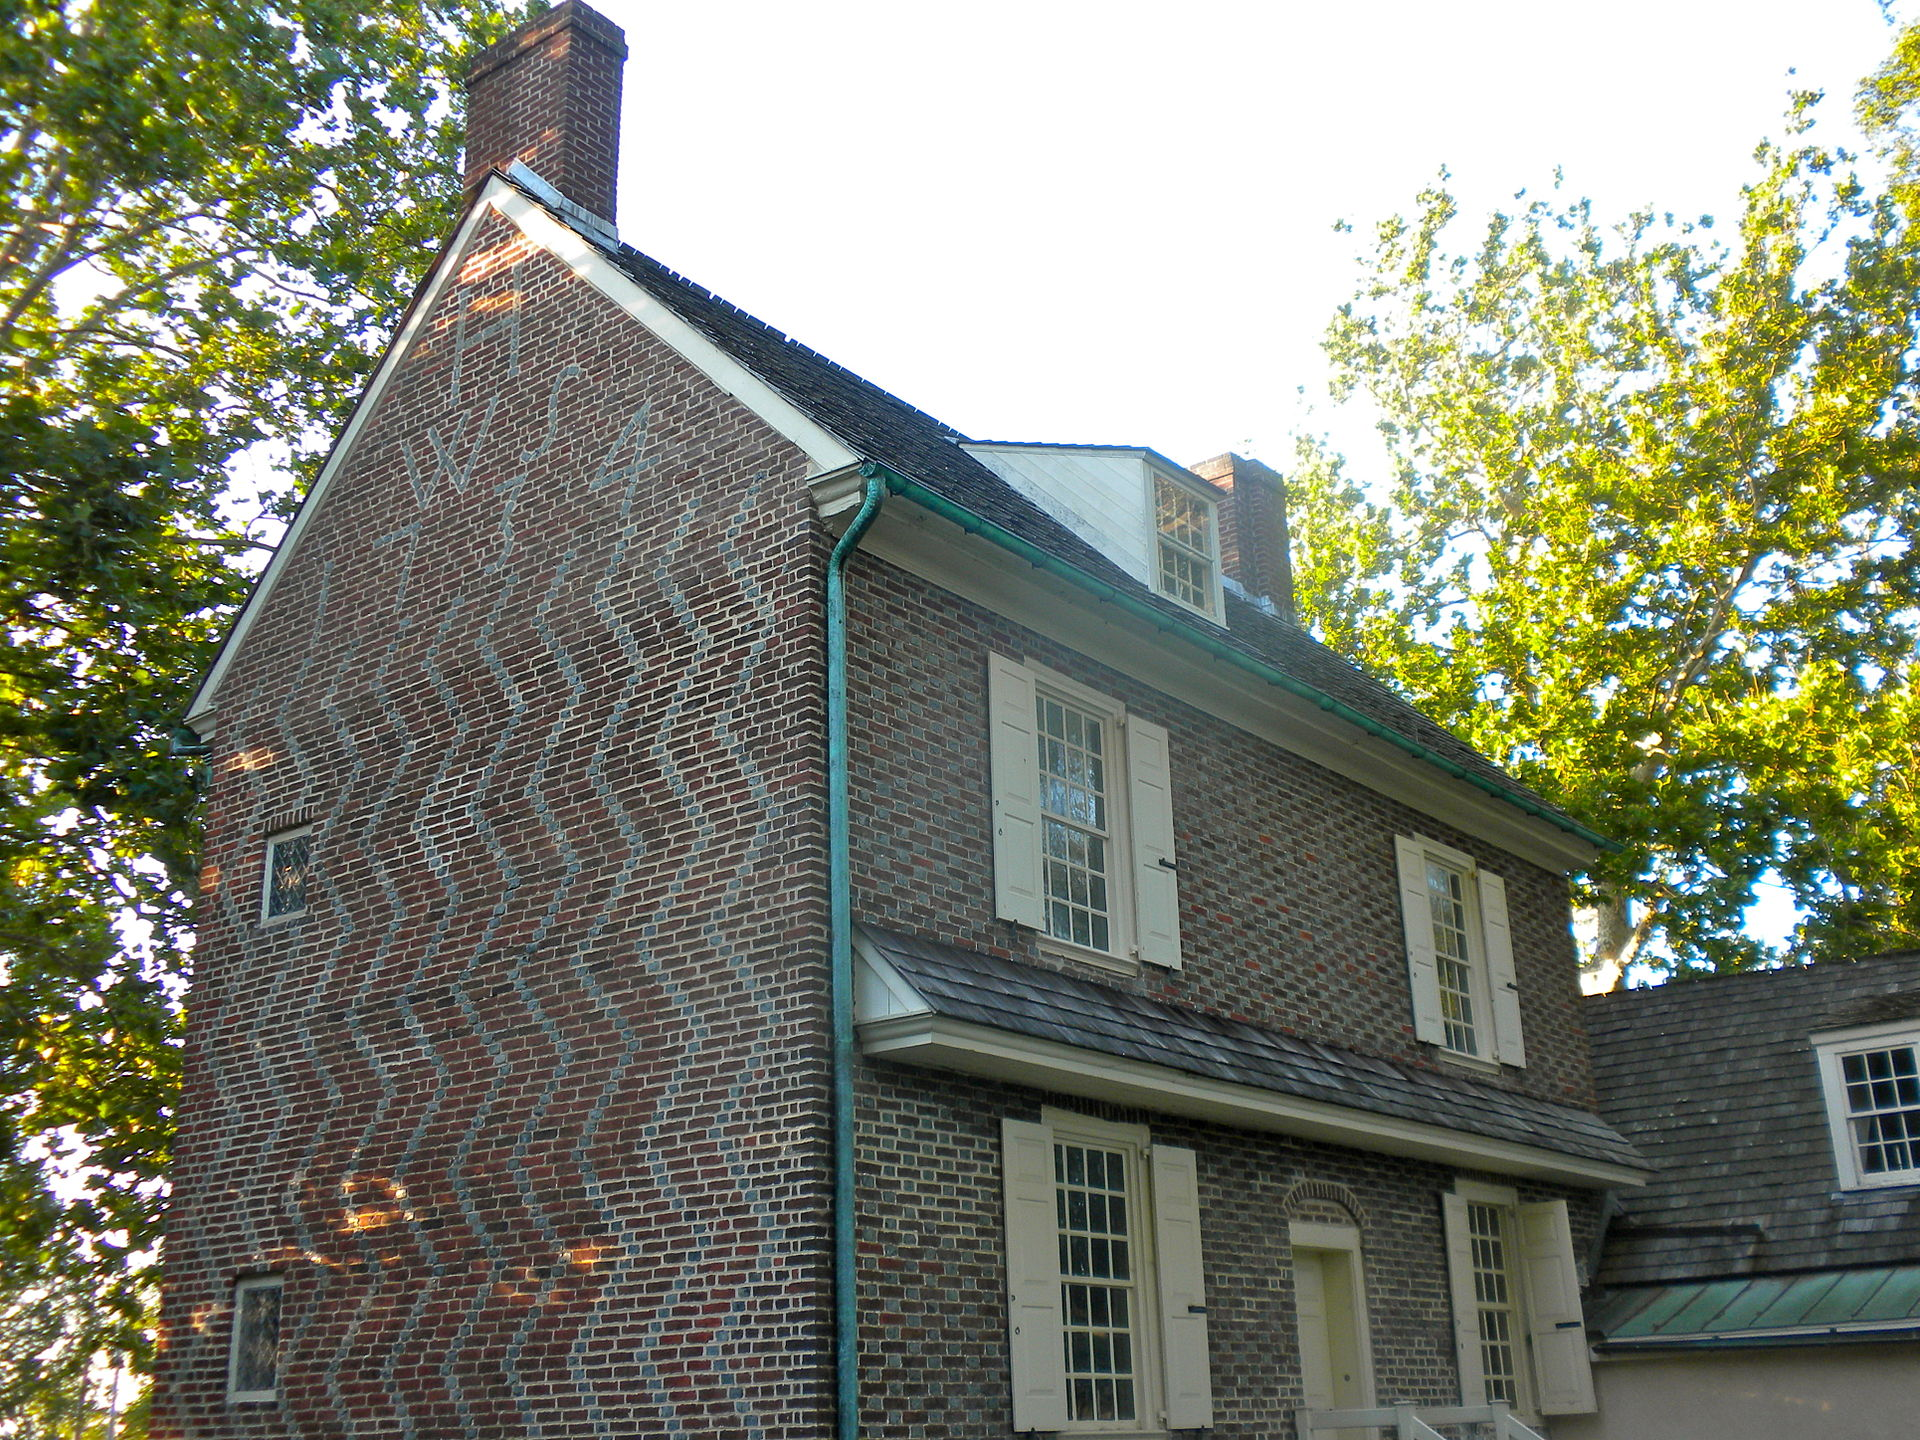 The Hancock House, with William and Sarah's initials visible